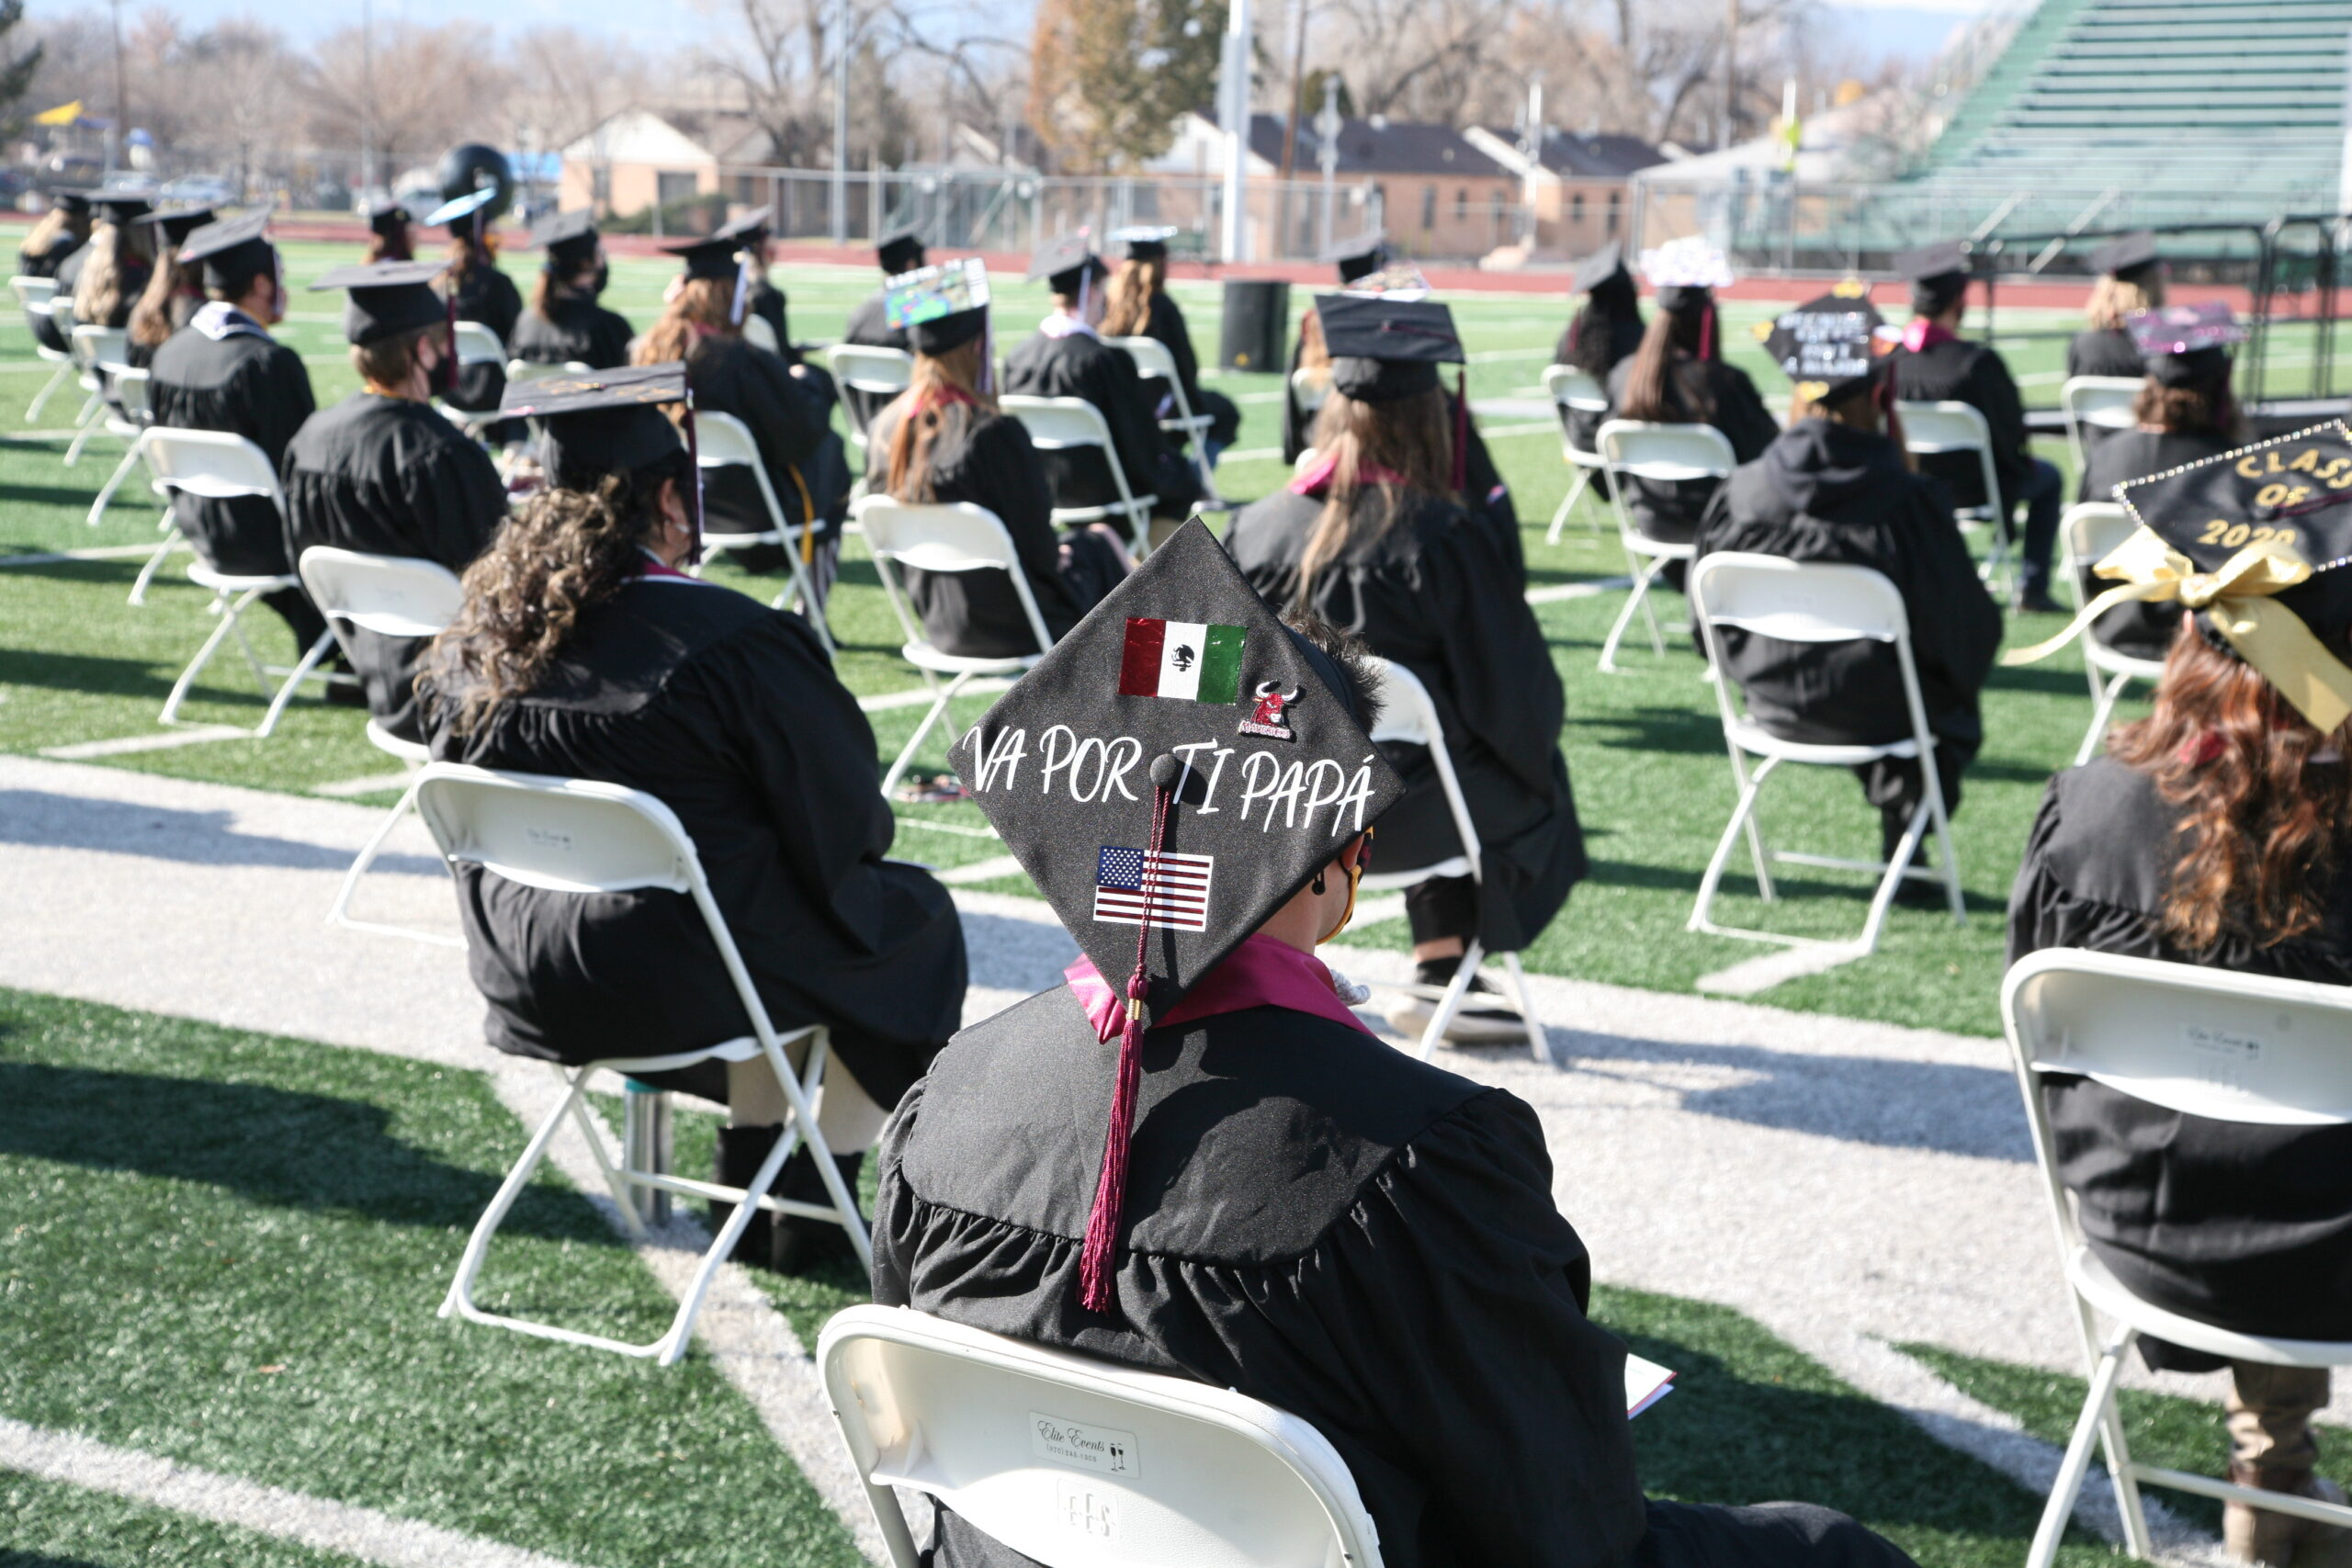 Colorado Mesa University kept its winter graduations small, only a few hundred guests spread out across a stadium that seats 8,000. Everyone who attended had to test negative for the virus beforehand.